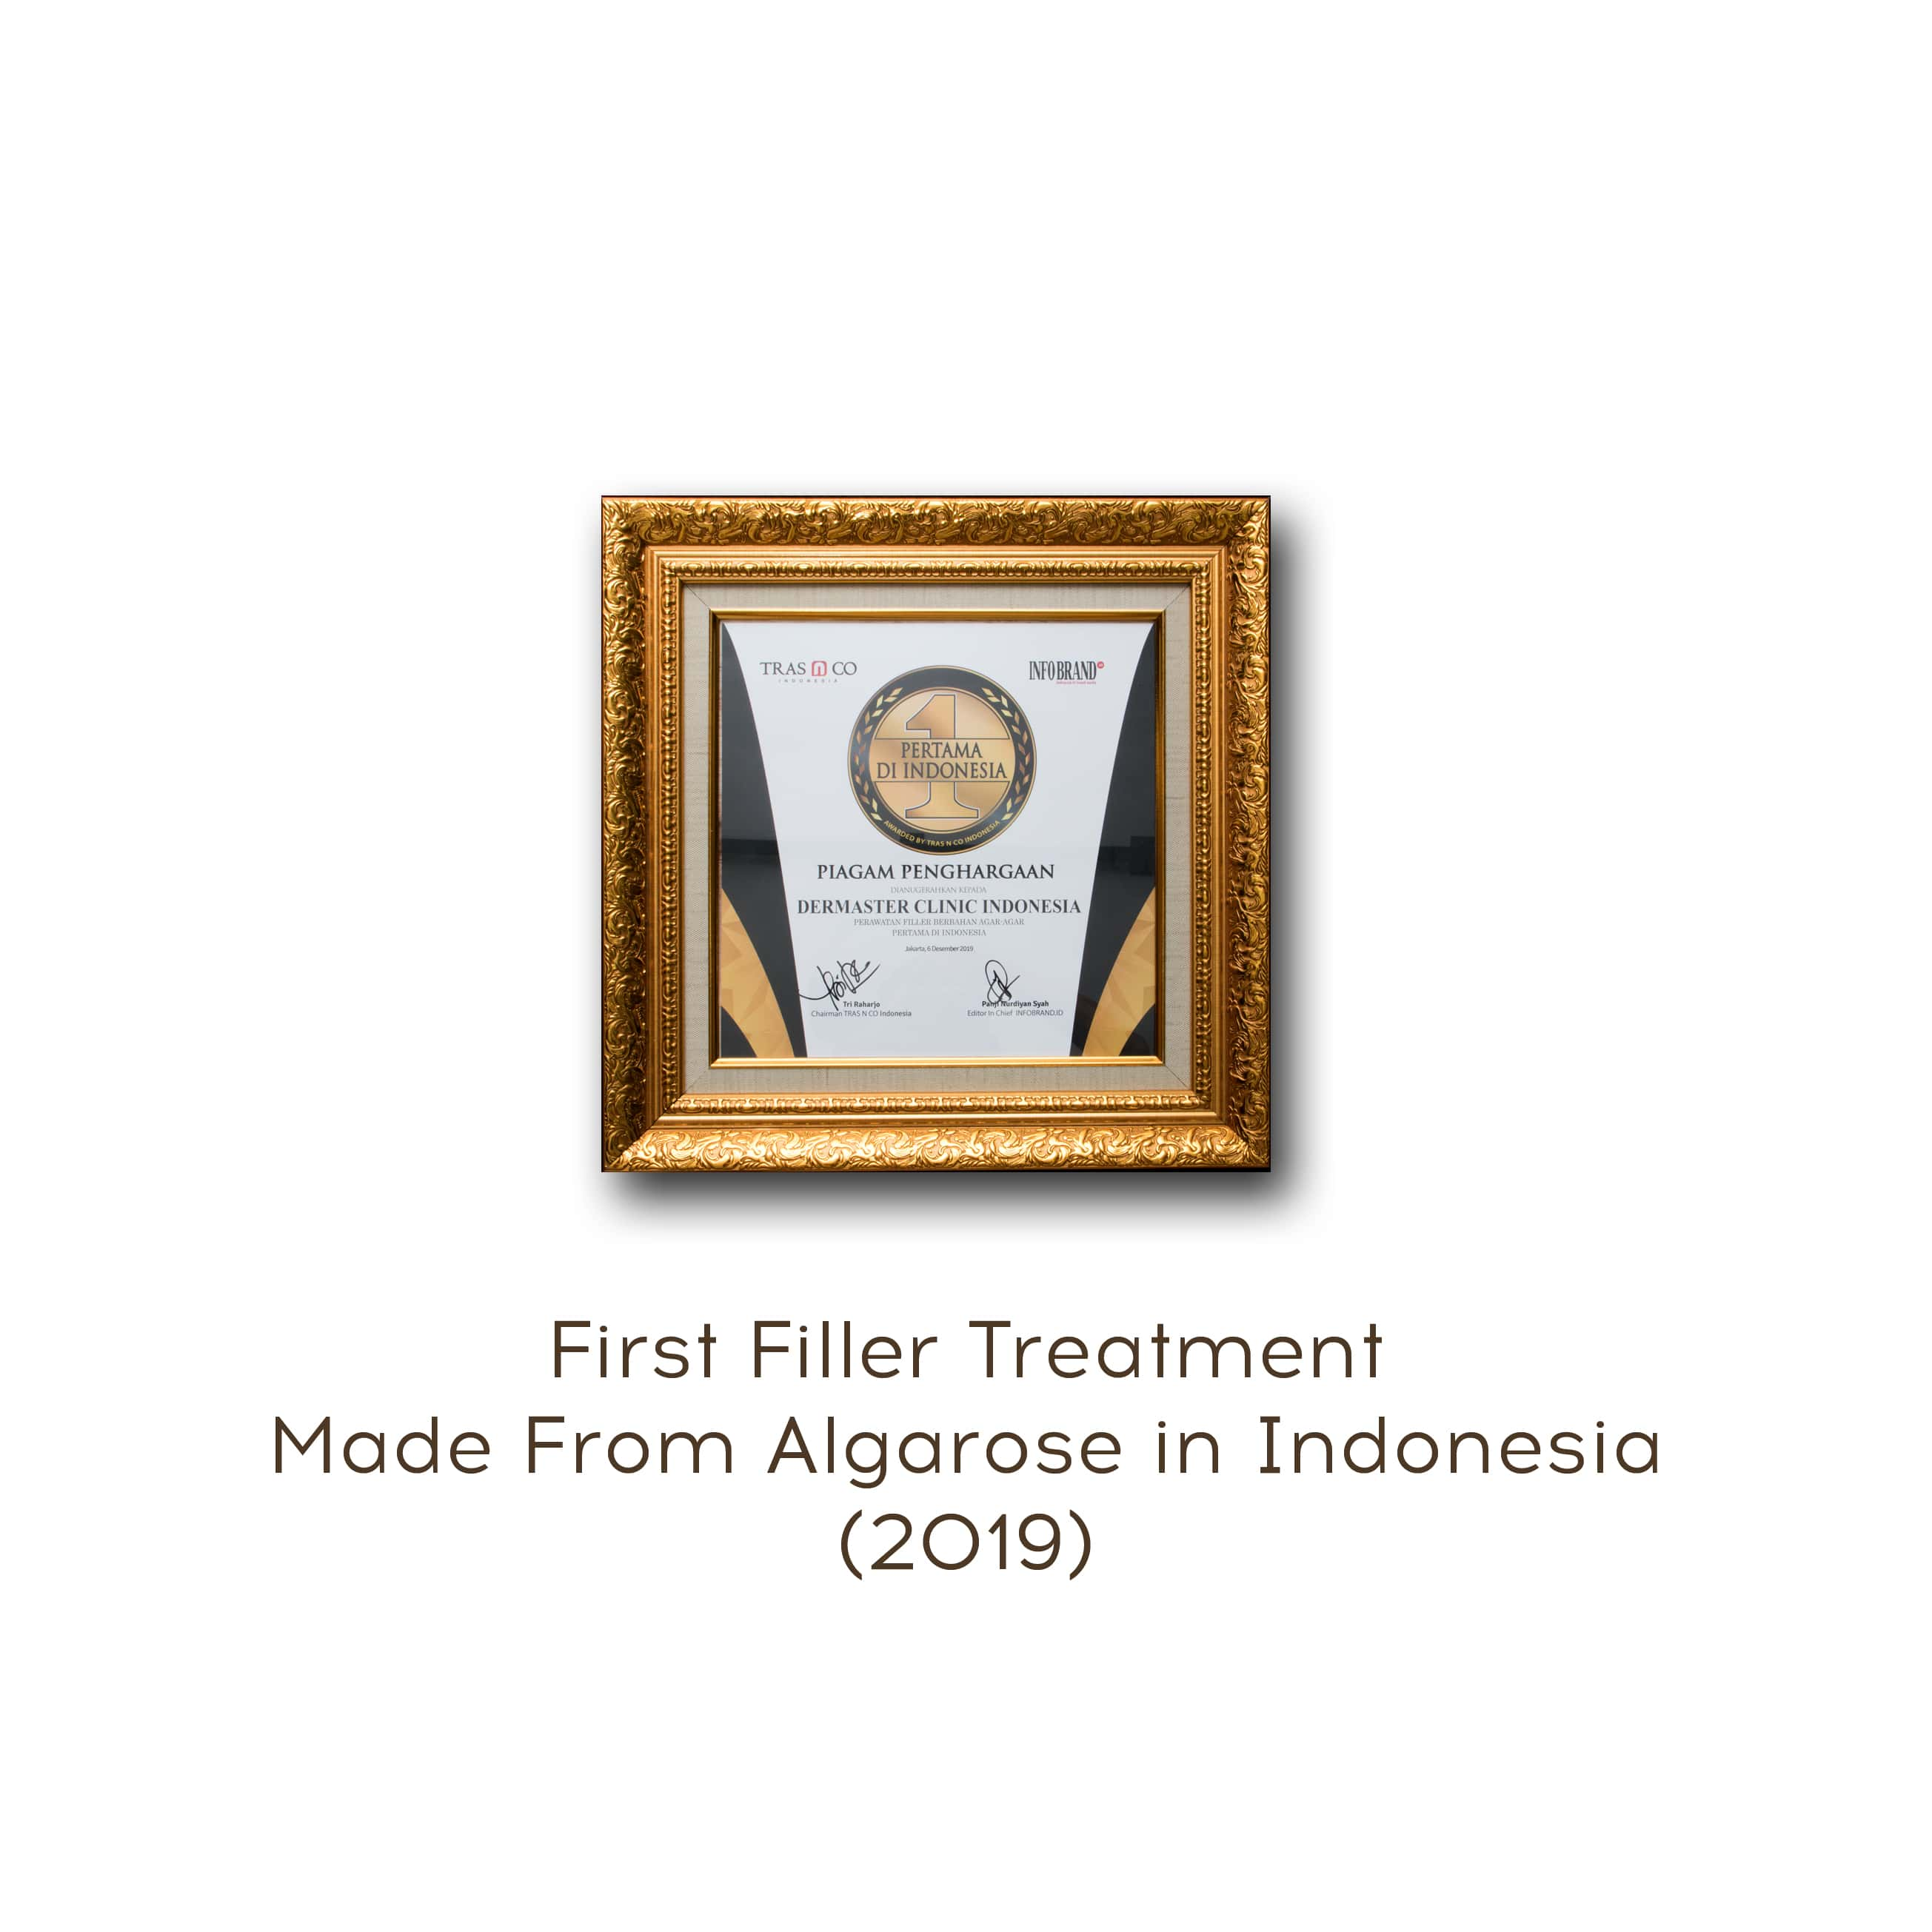 filler treatment award